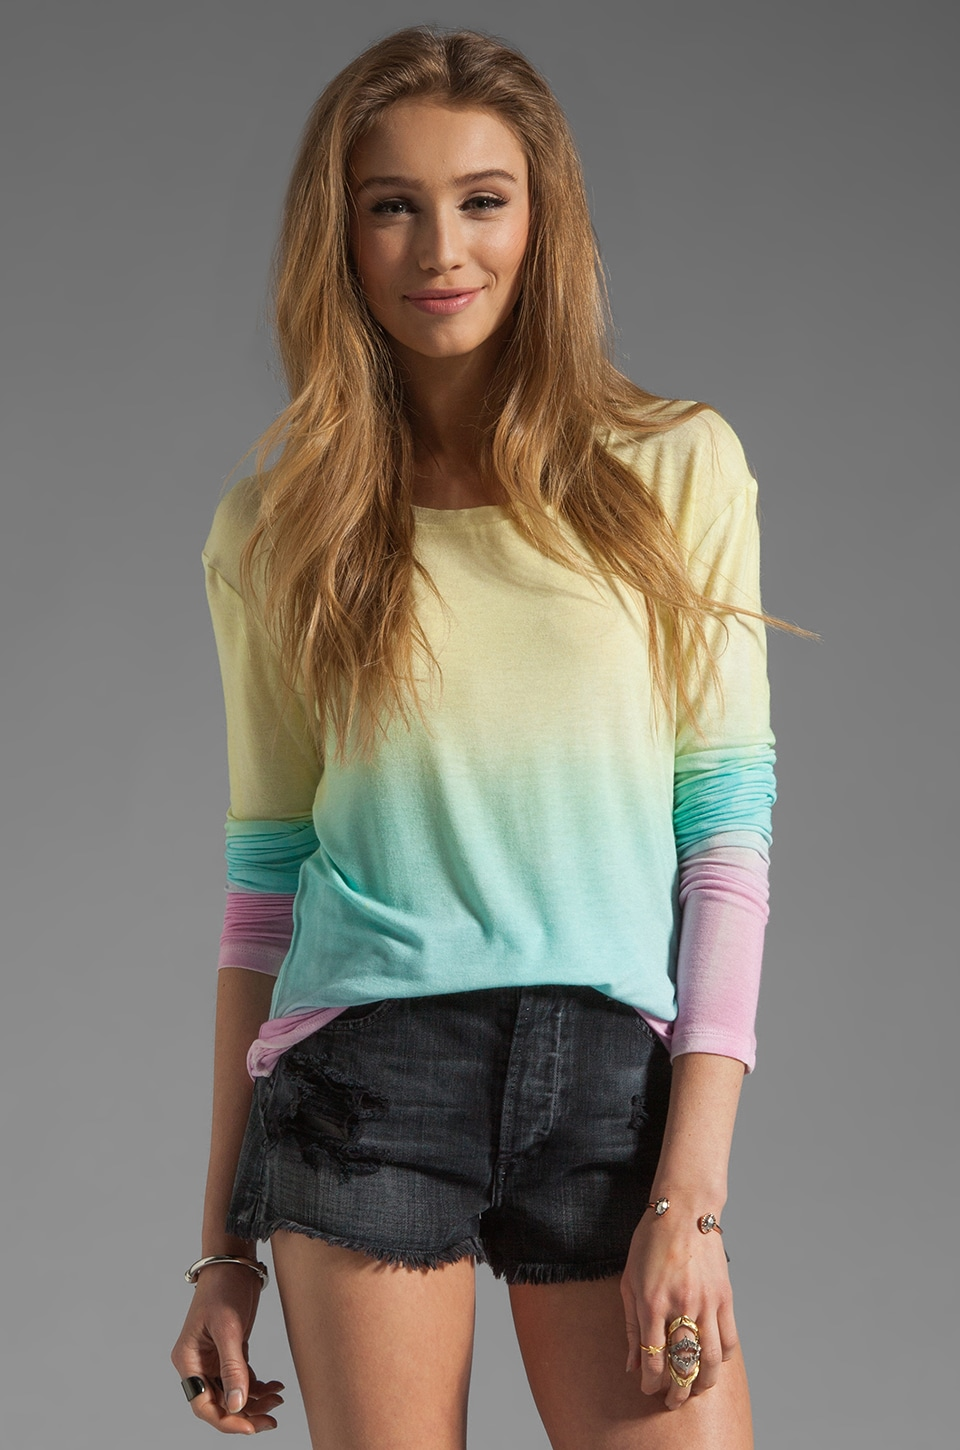 UNIF Cake Top in Multi